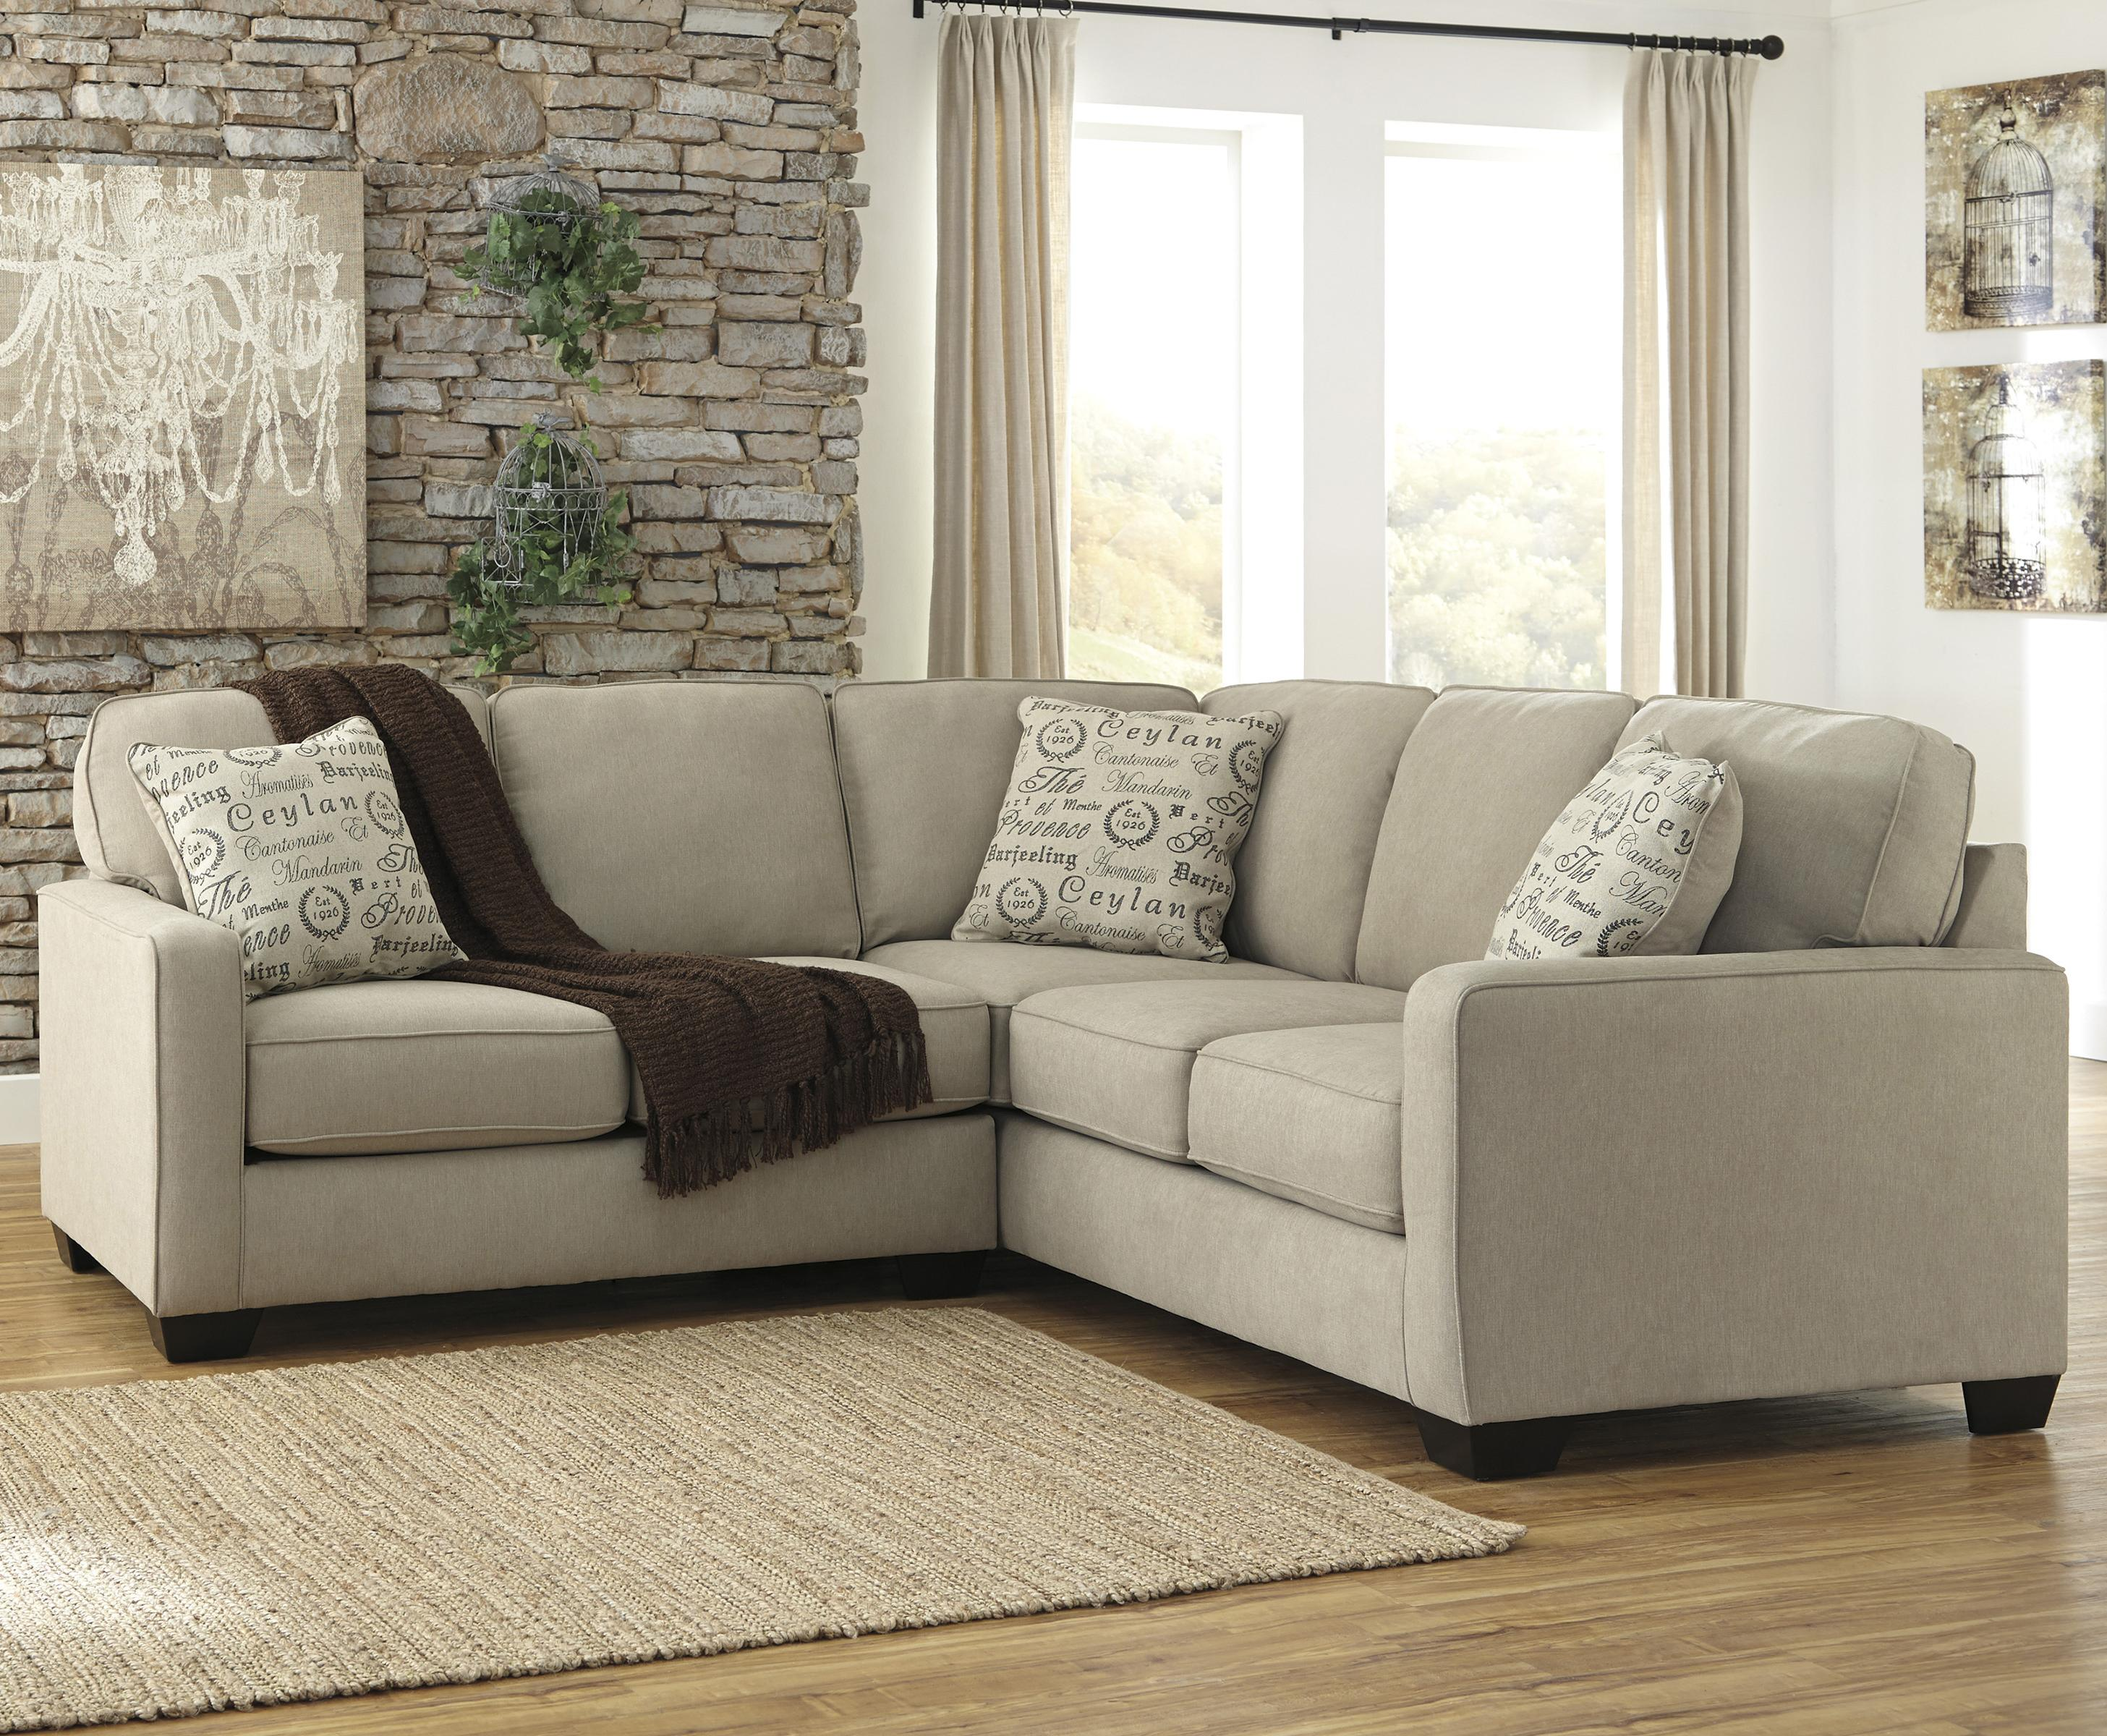 Alenya - Quartz 2-Piece Sectional with Left Loveseat by Ashley (Signature Design) at Johnny Janosik